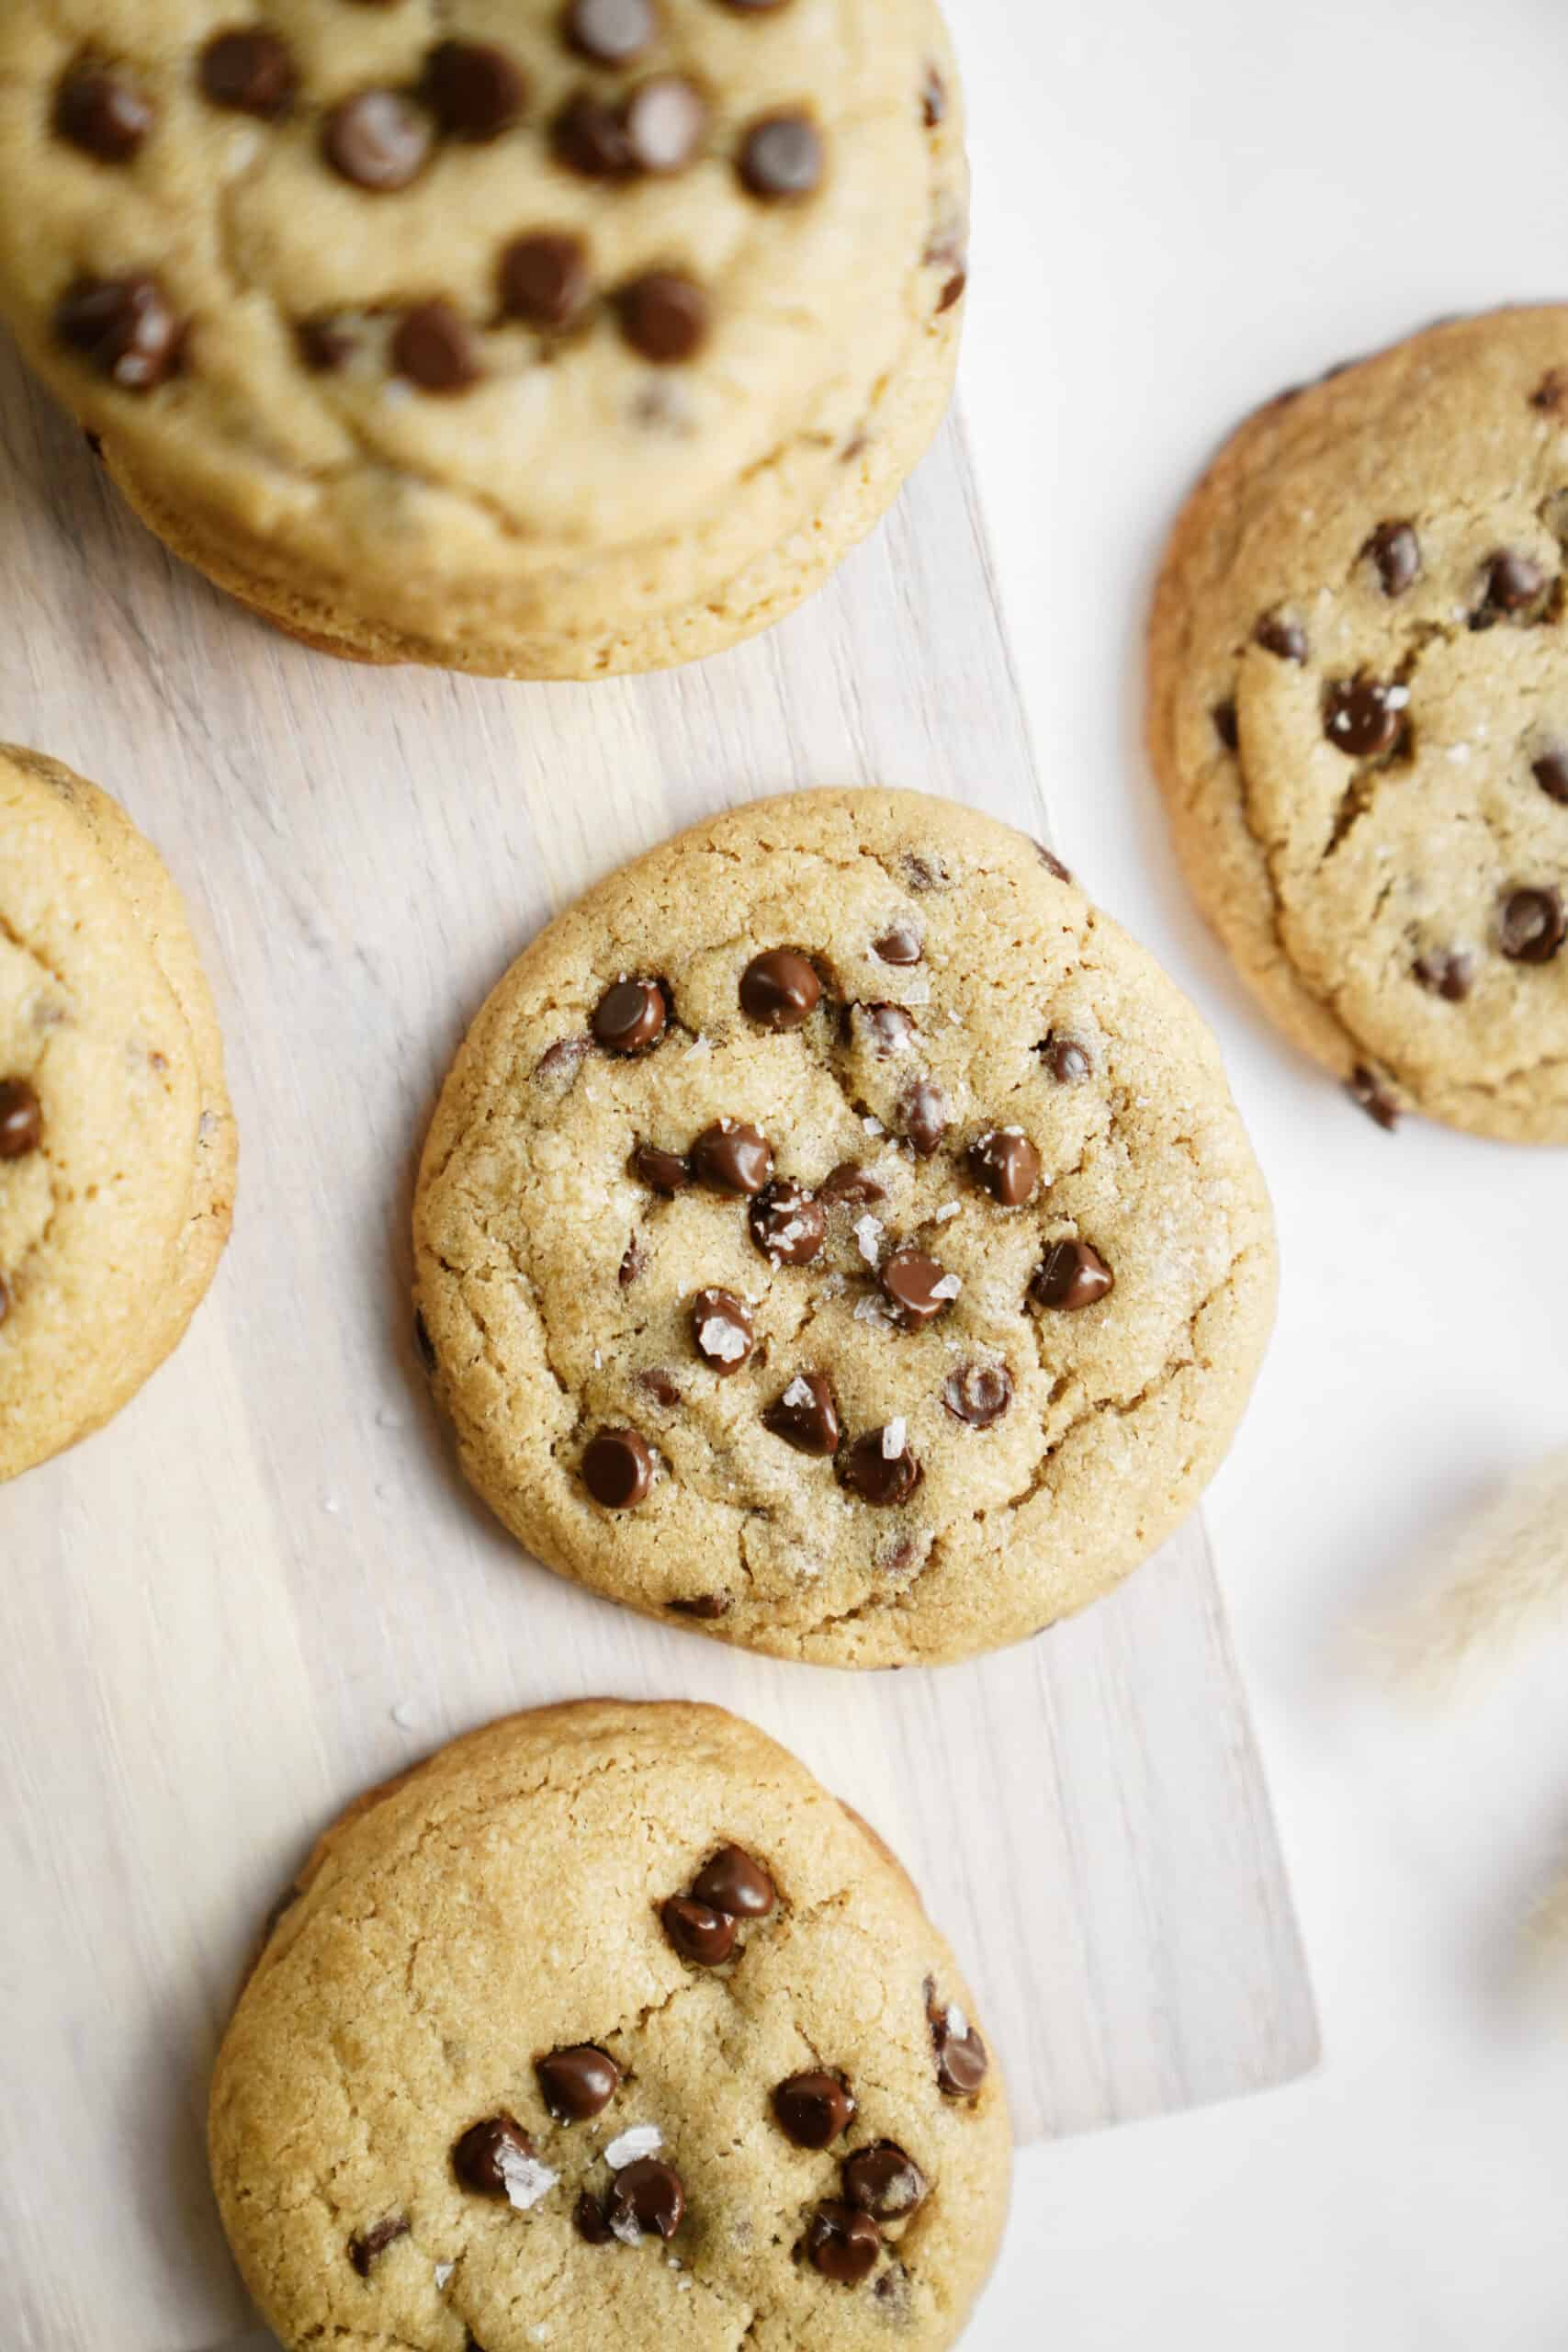 Homemade chocolate chip cookies on a counter